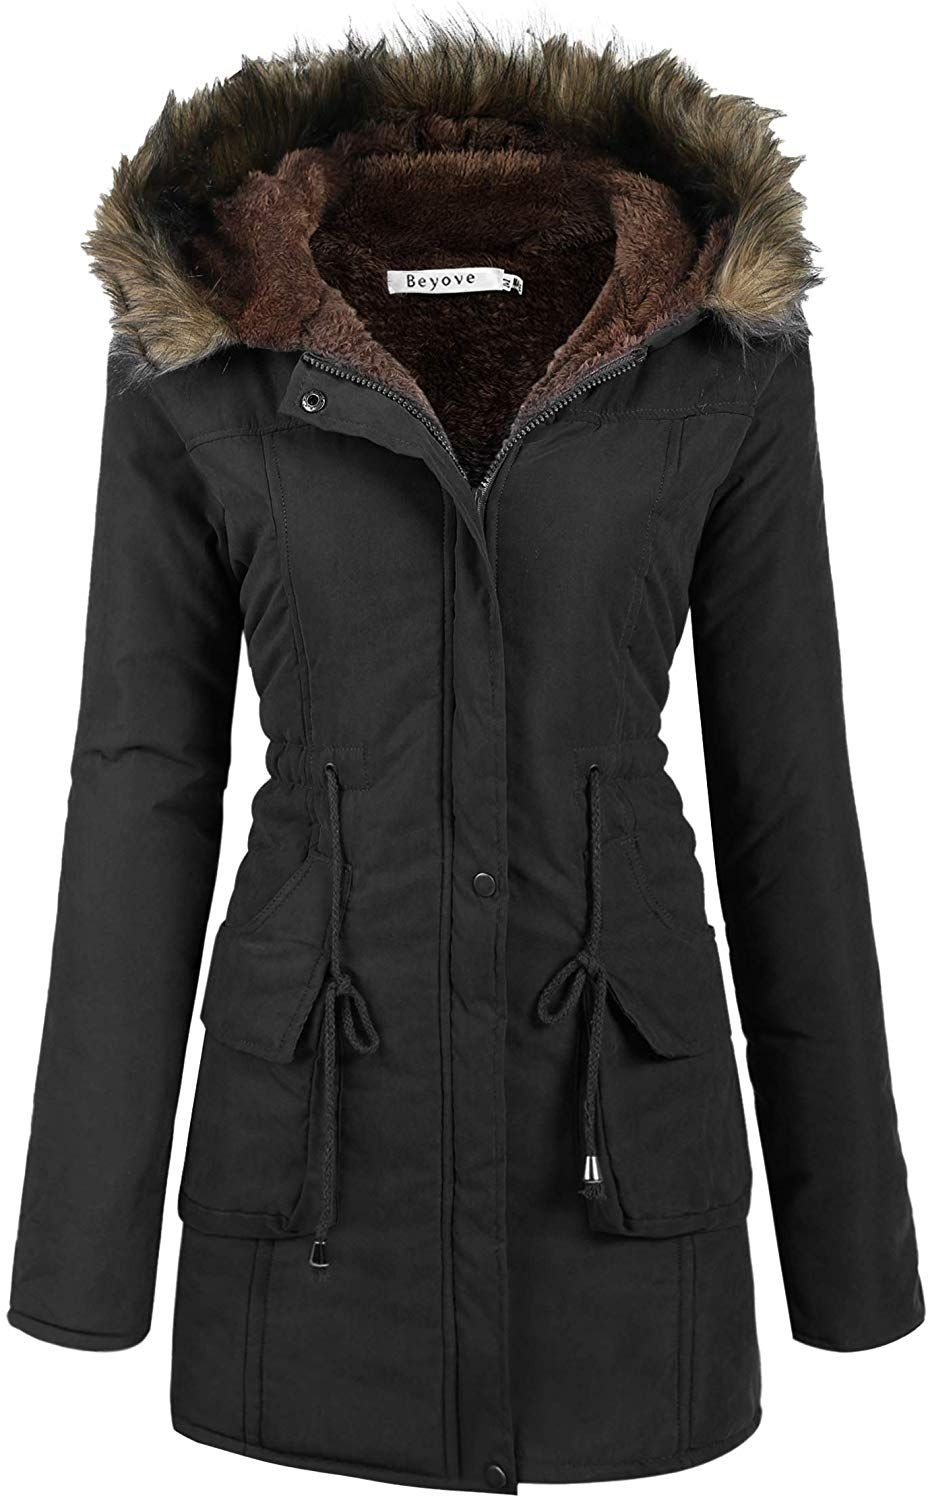 Beyove Womens Hooded Warm Winter Coats with Faux Fur Lined Outerwear JacketClothing, Amazon Affiliate link. Click image for detail, #Amazon #beyove #womens #hooded #warm #winter #coats #faux #fur #lined #outerwear #jacketclothing #quality #fabric #cold #prevent #heat #losingsuper #soft #lining #makes #retentionhood #extra #artificial #lamb #jacket #stylishadjustable #drawstring #waistgive #spa